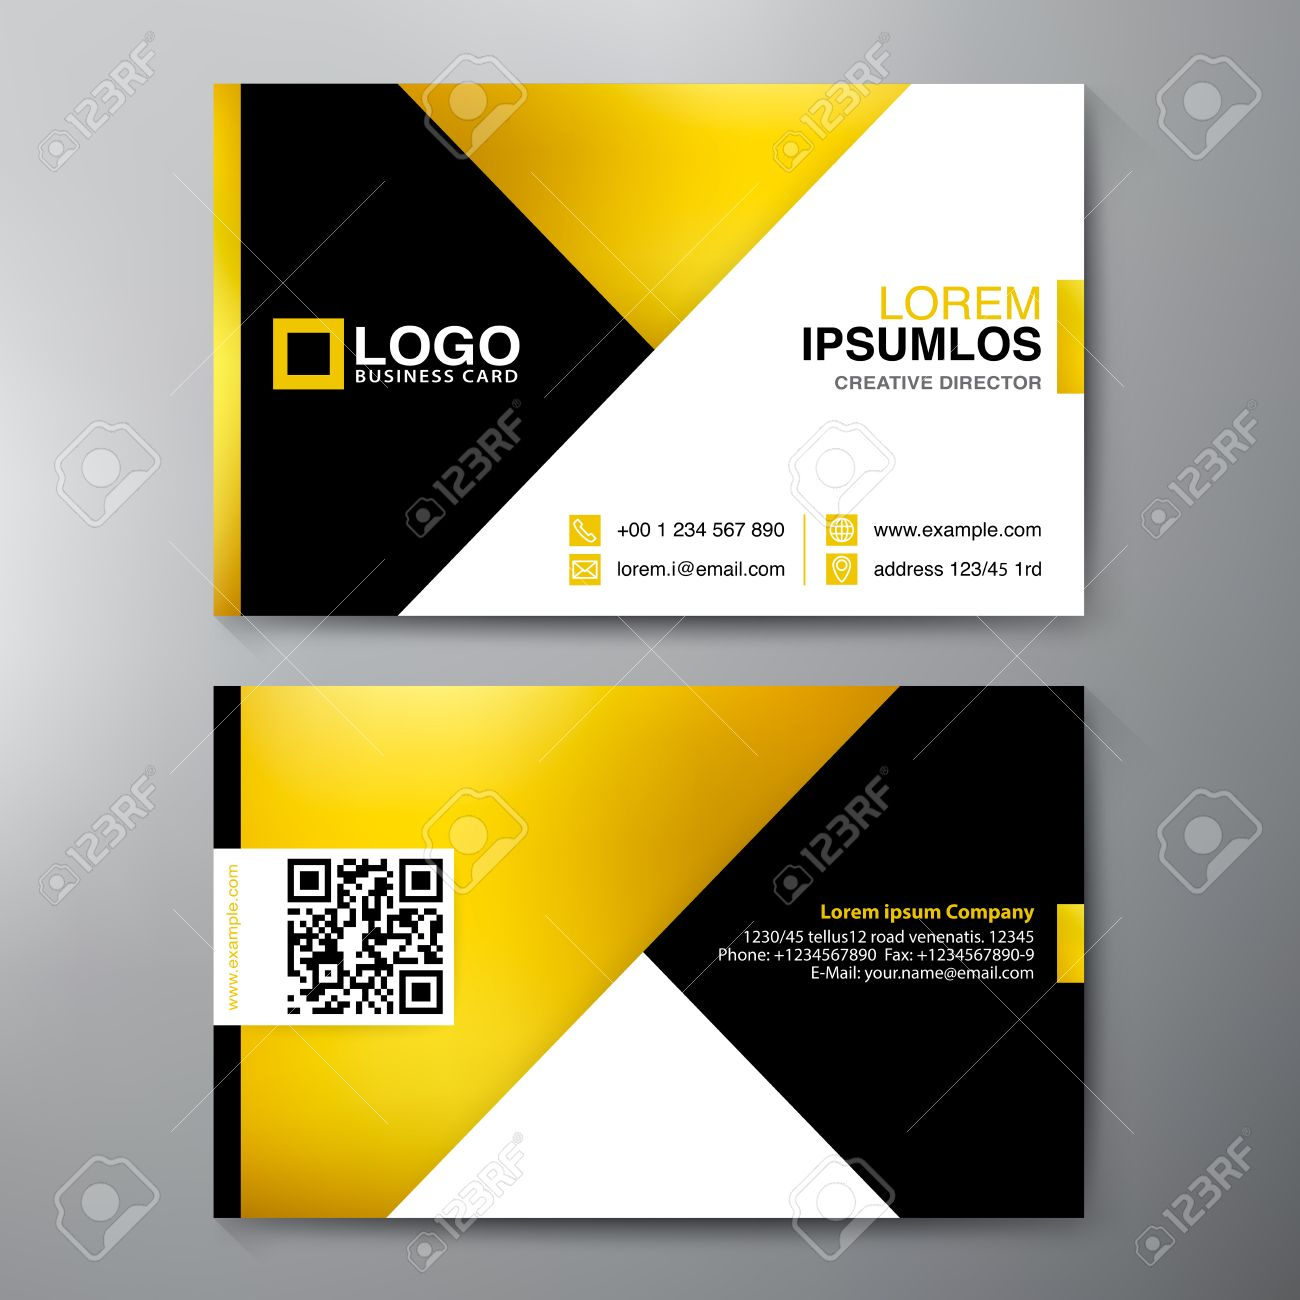 Modern business card design template vector illustration royalty modern business card design template vector illustration stock vector 39179741 accmission Choice Image